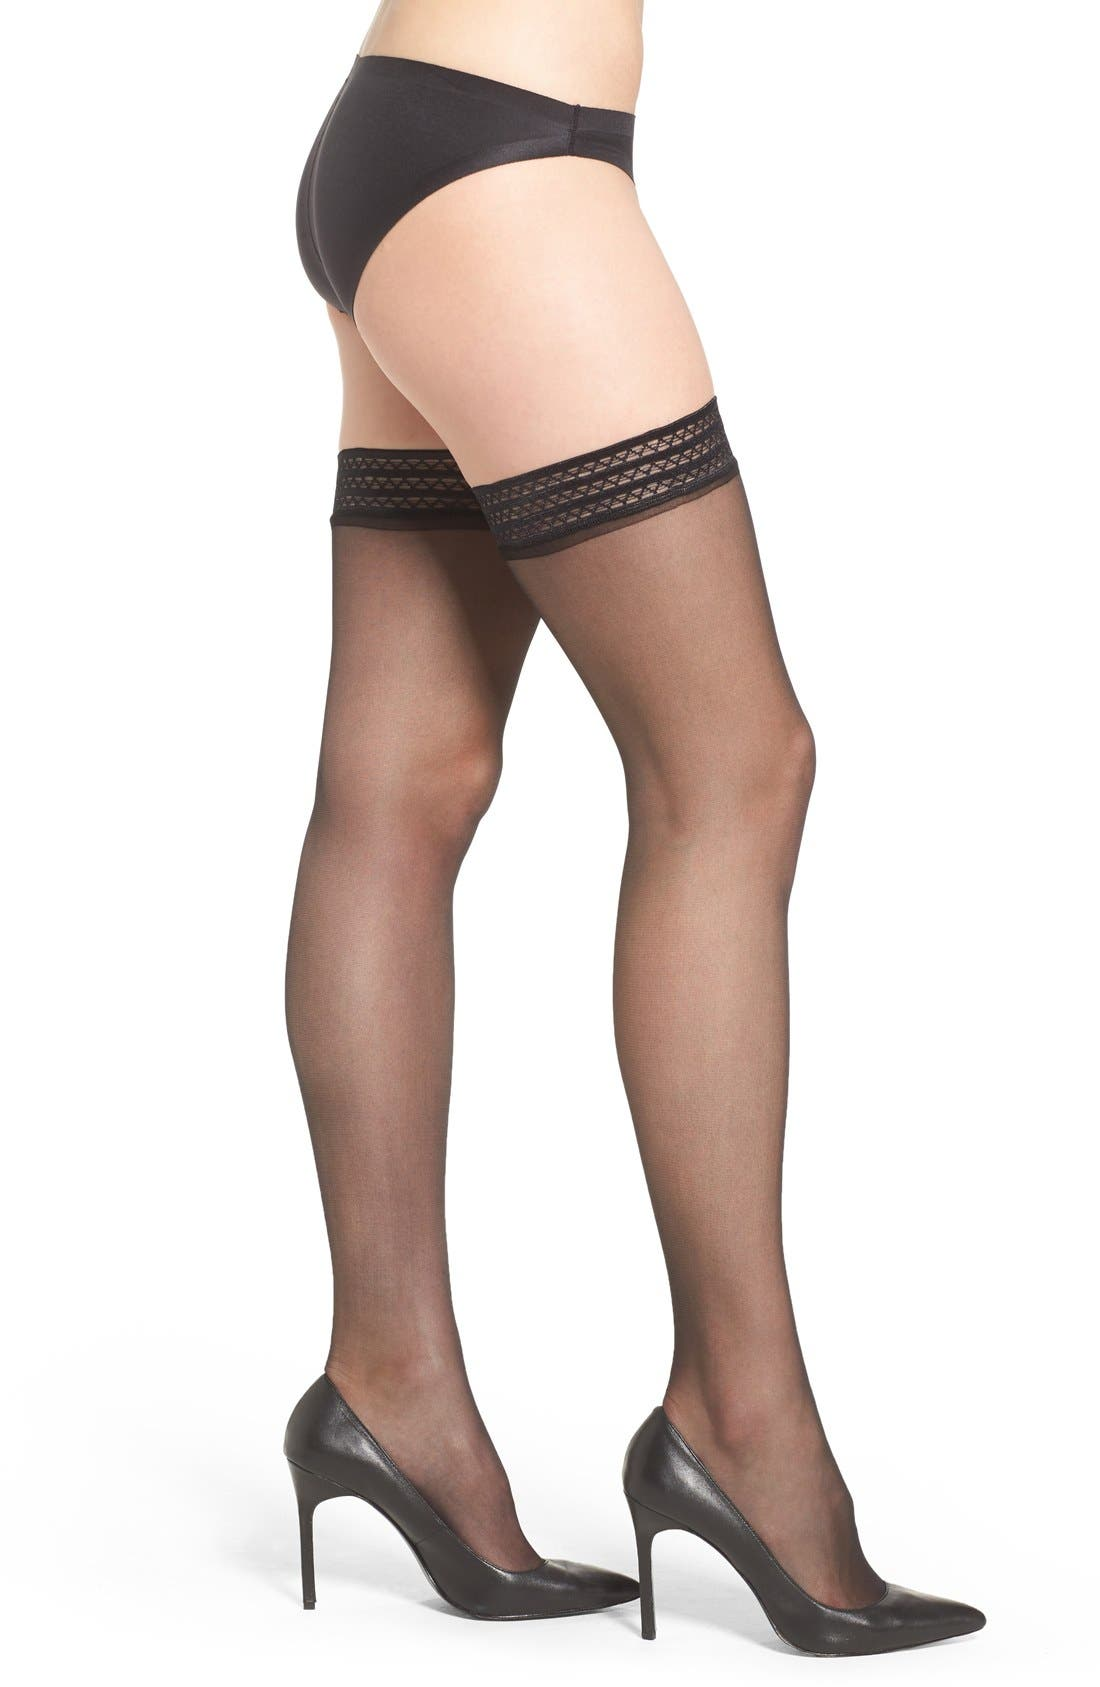 Sheer Thigh High Stay-Up Stockings,                             Main thumbnail 1, color,                             BLACK